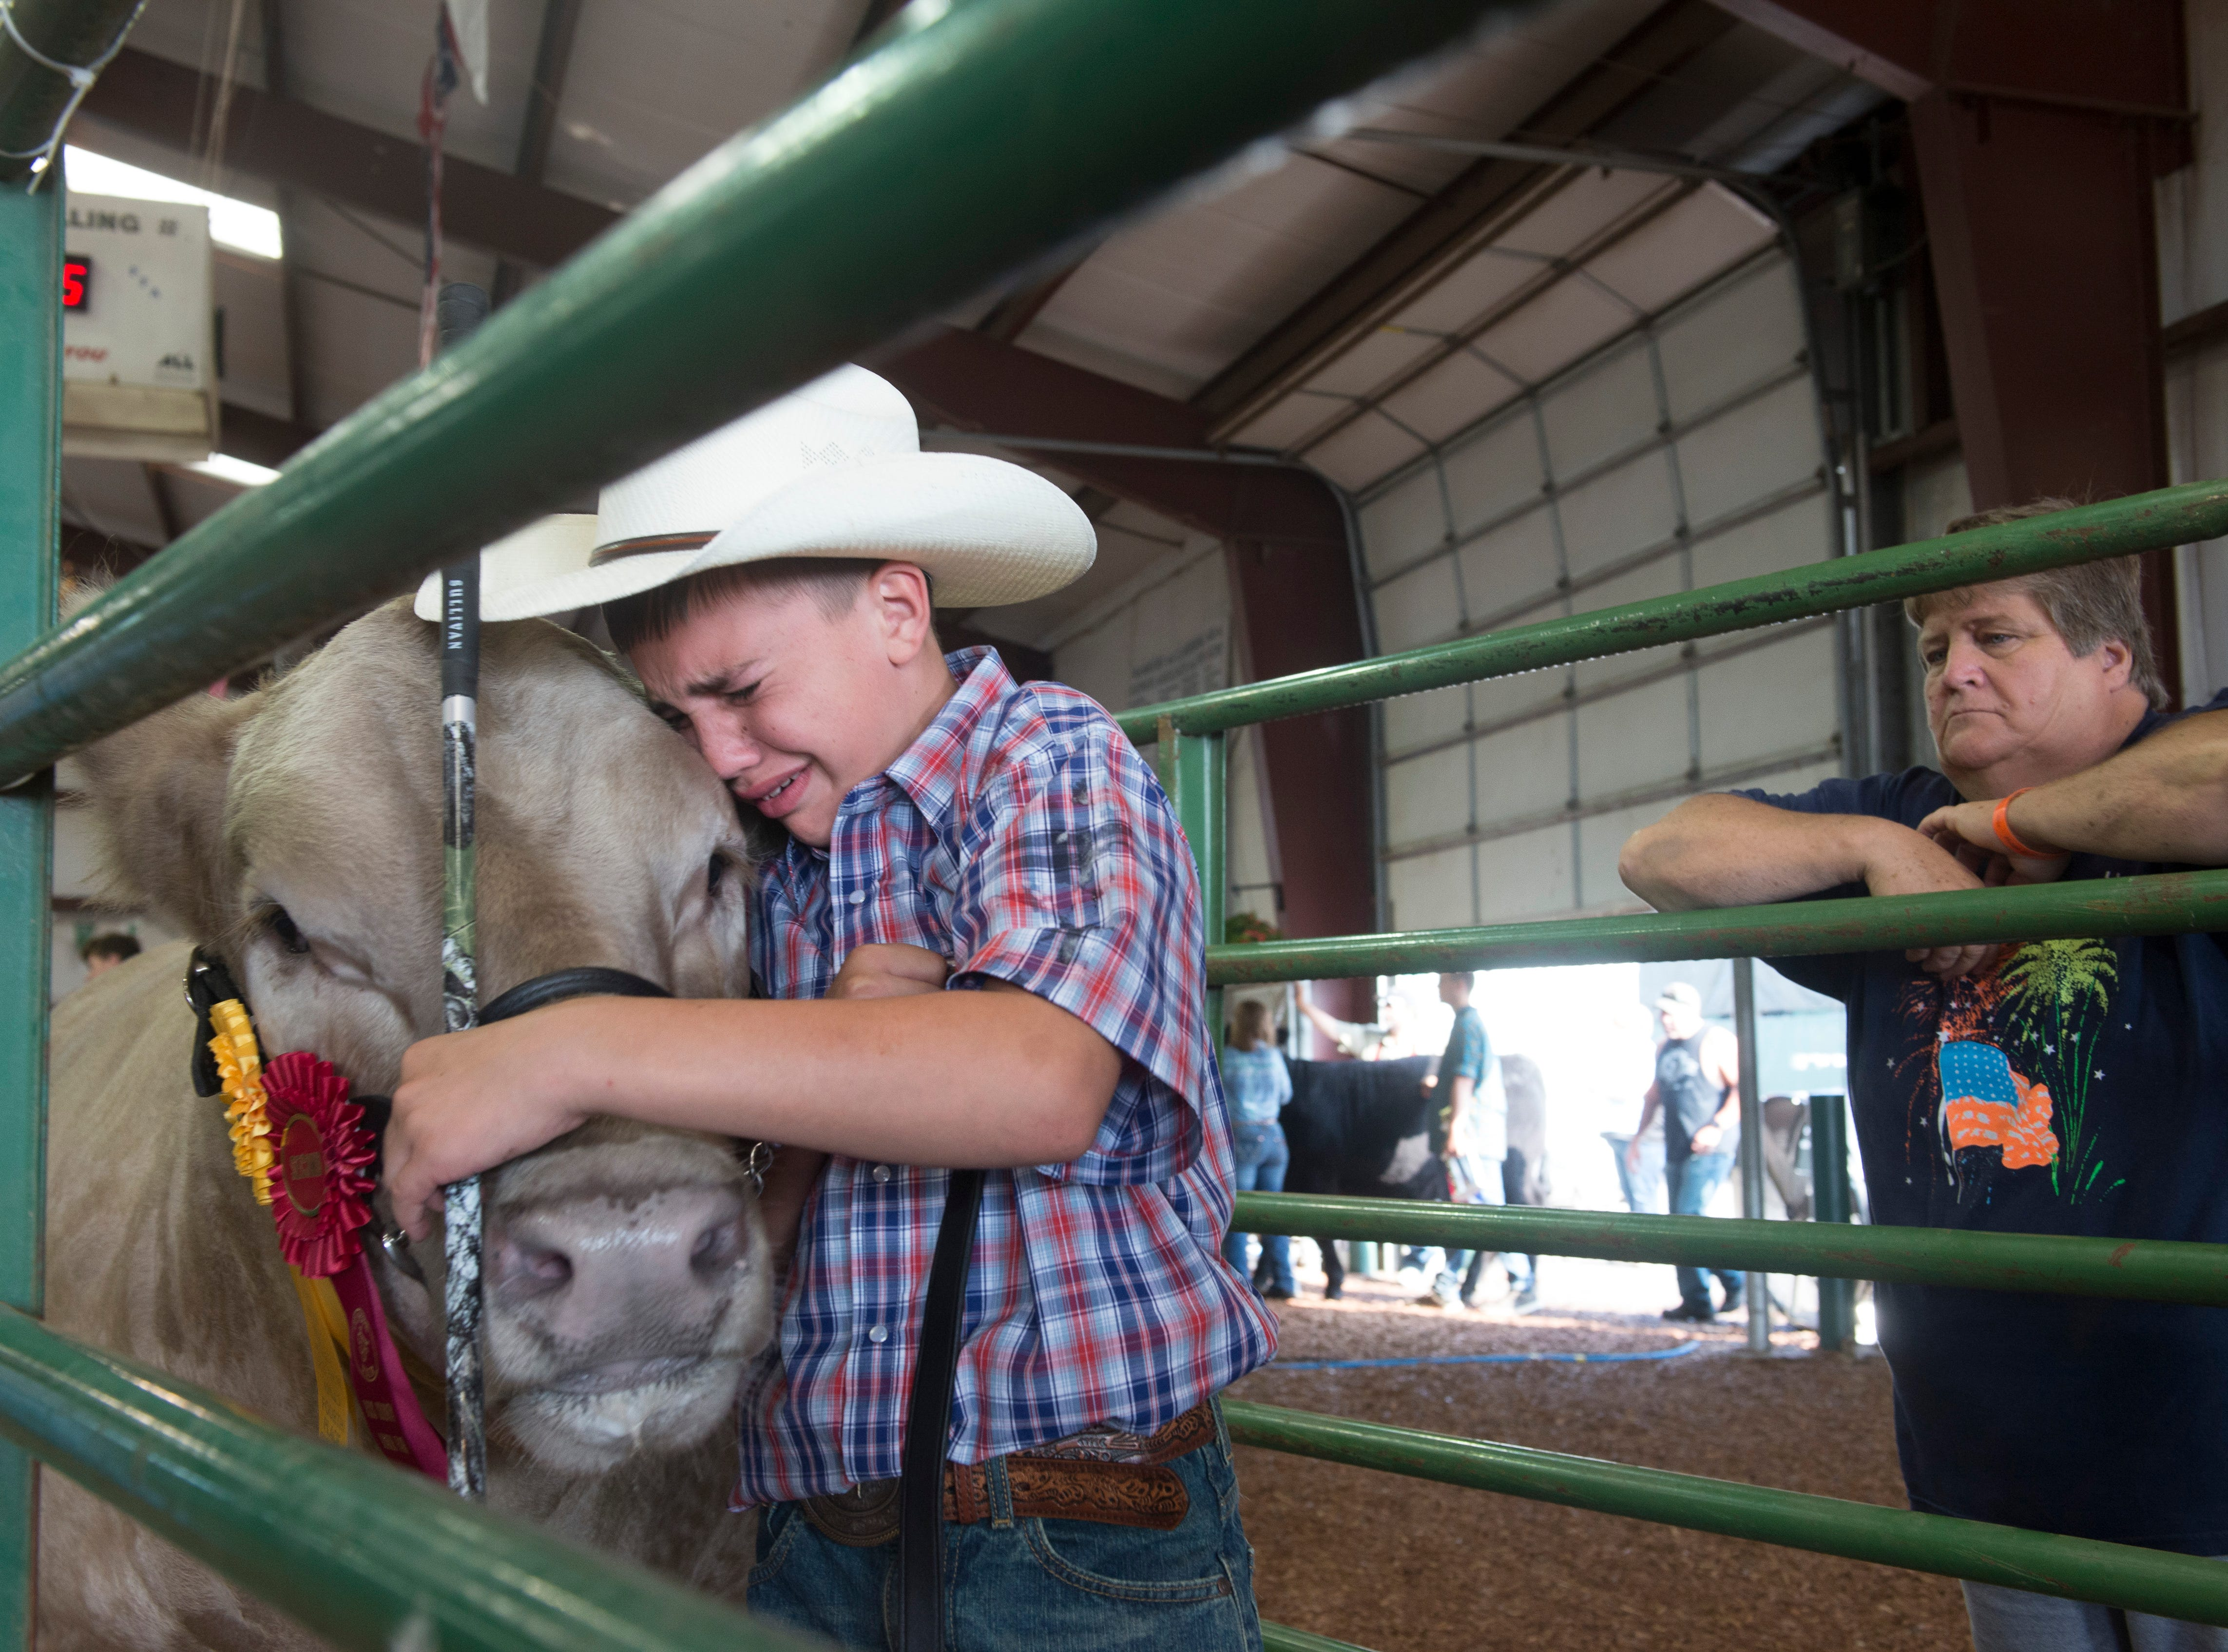 Blake Hauswirth cries while holding onto his steer after auction during the Jr. Fair Market Steer, Poultry and Rabbit Sale at the Ross County Fair on August 11, 2018, in Chillicothe, Ohio.